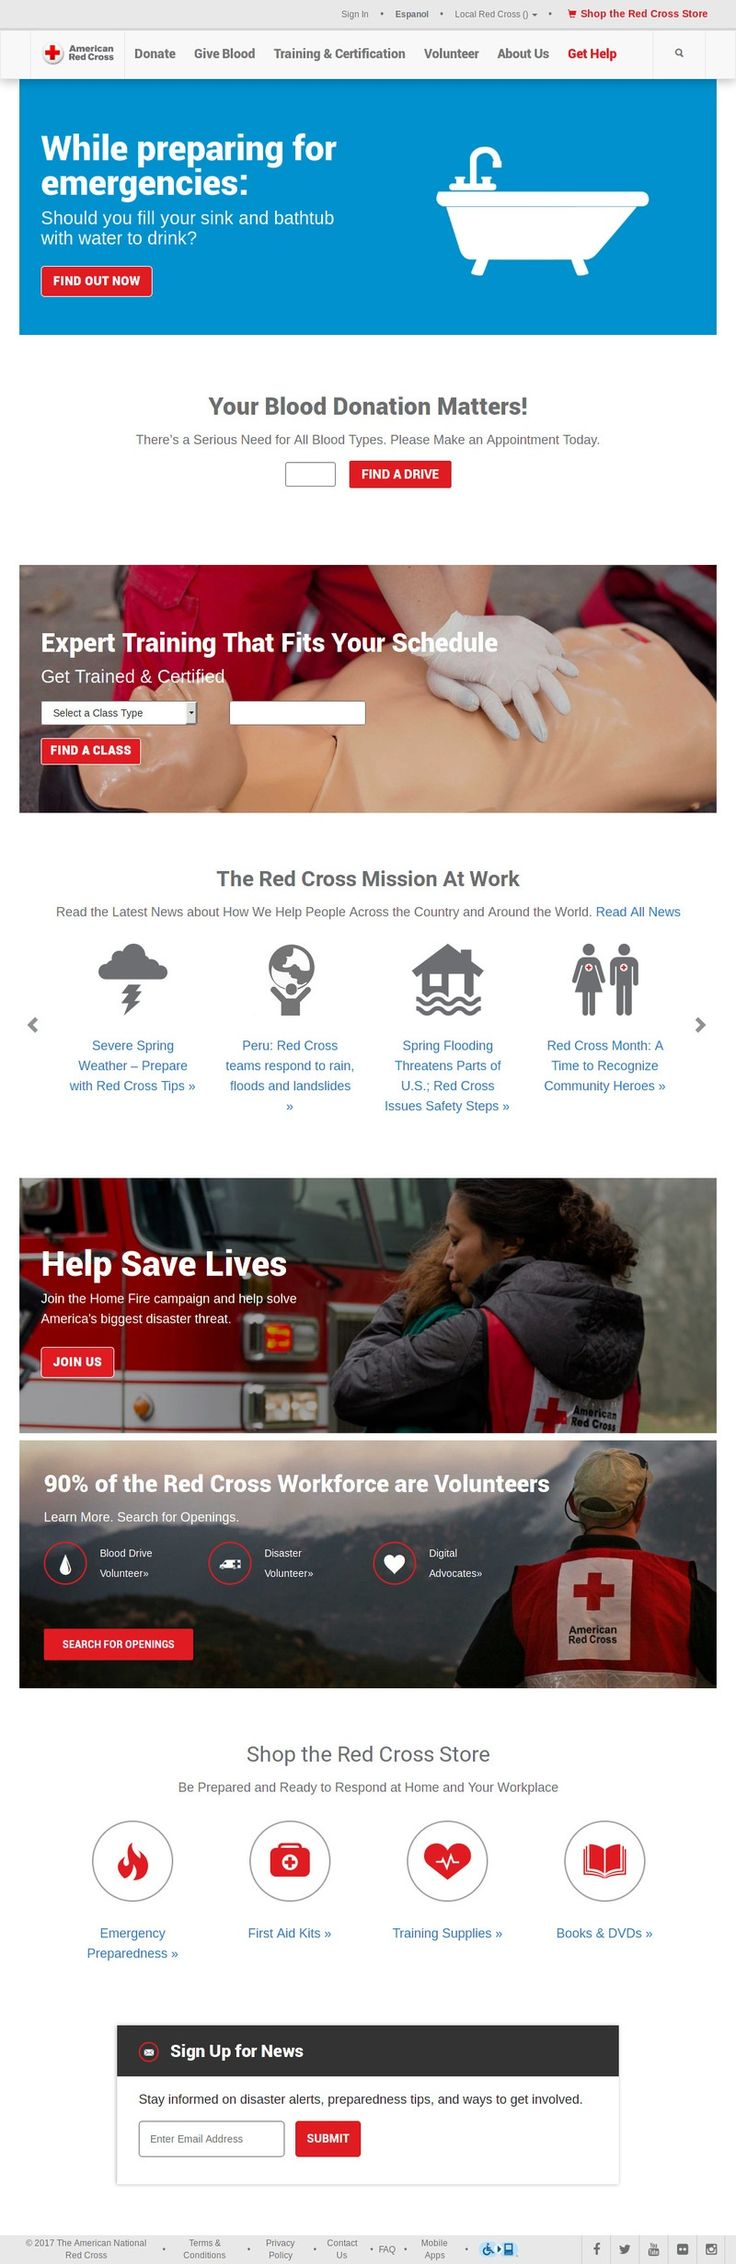 Screenshot of the www.redcross.org homepage by Snapito